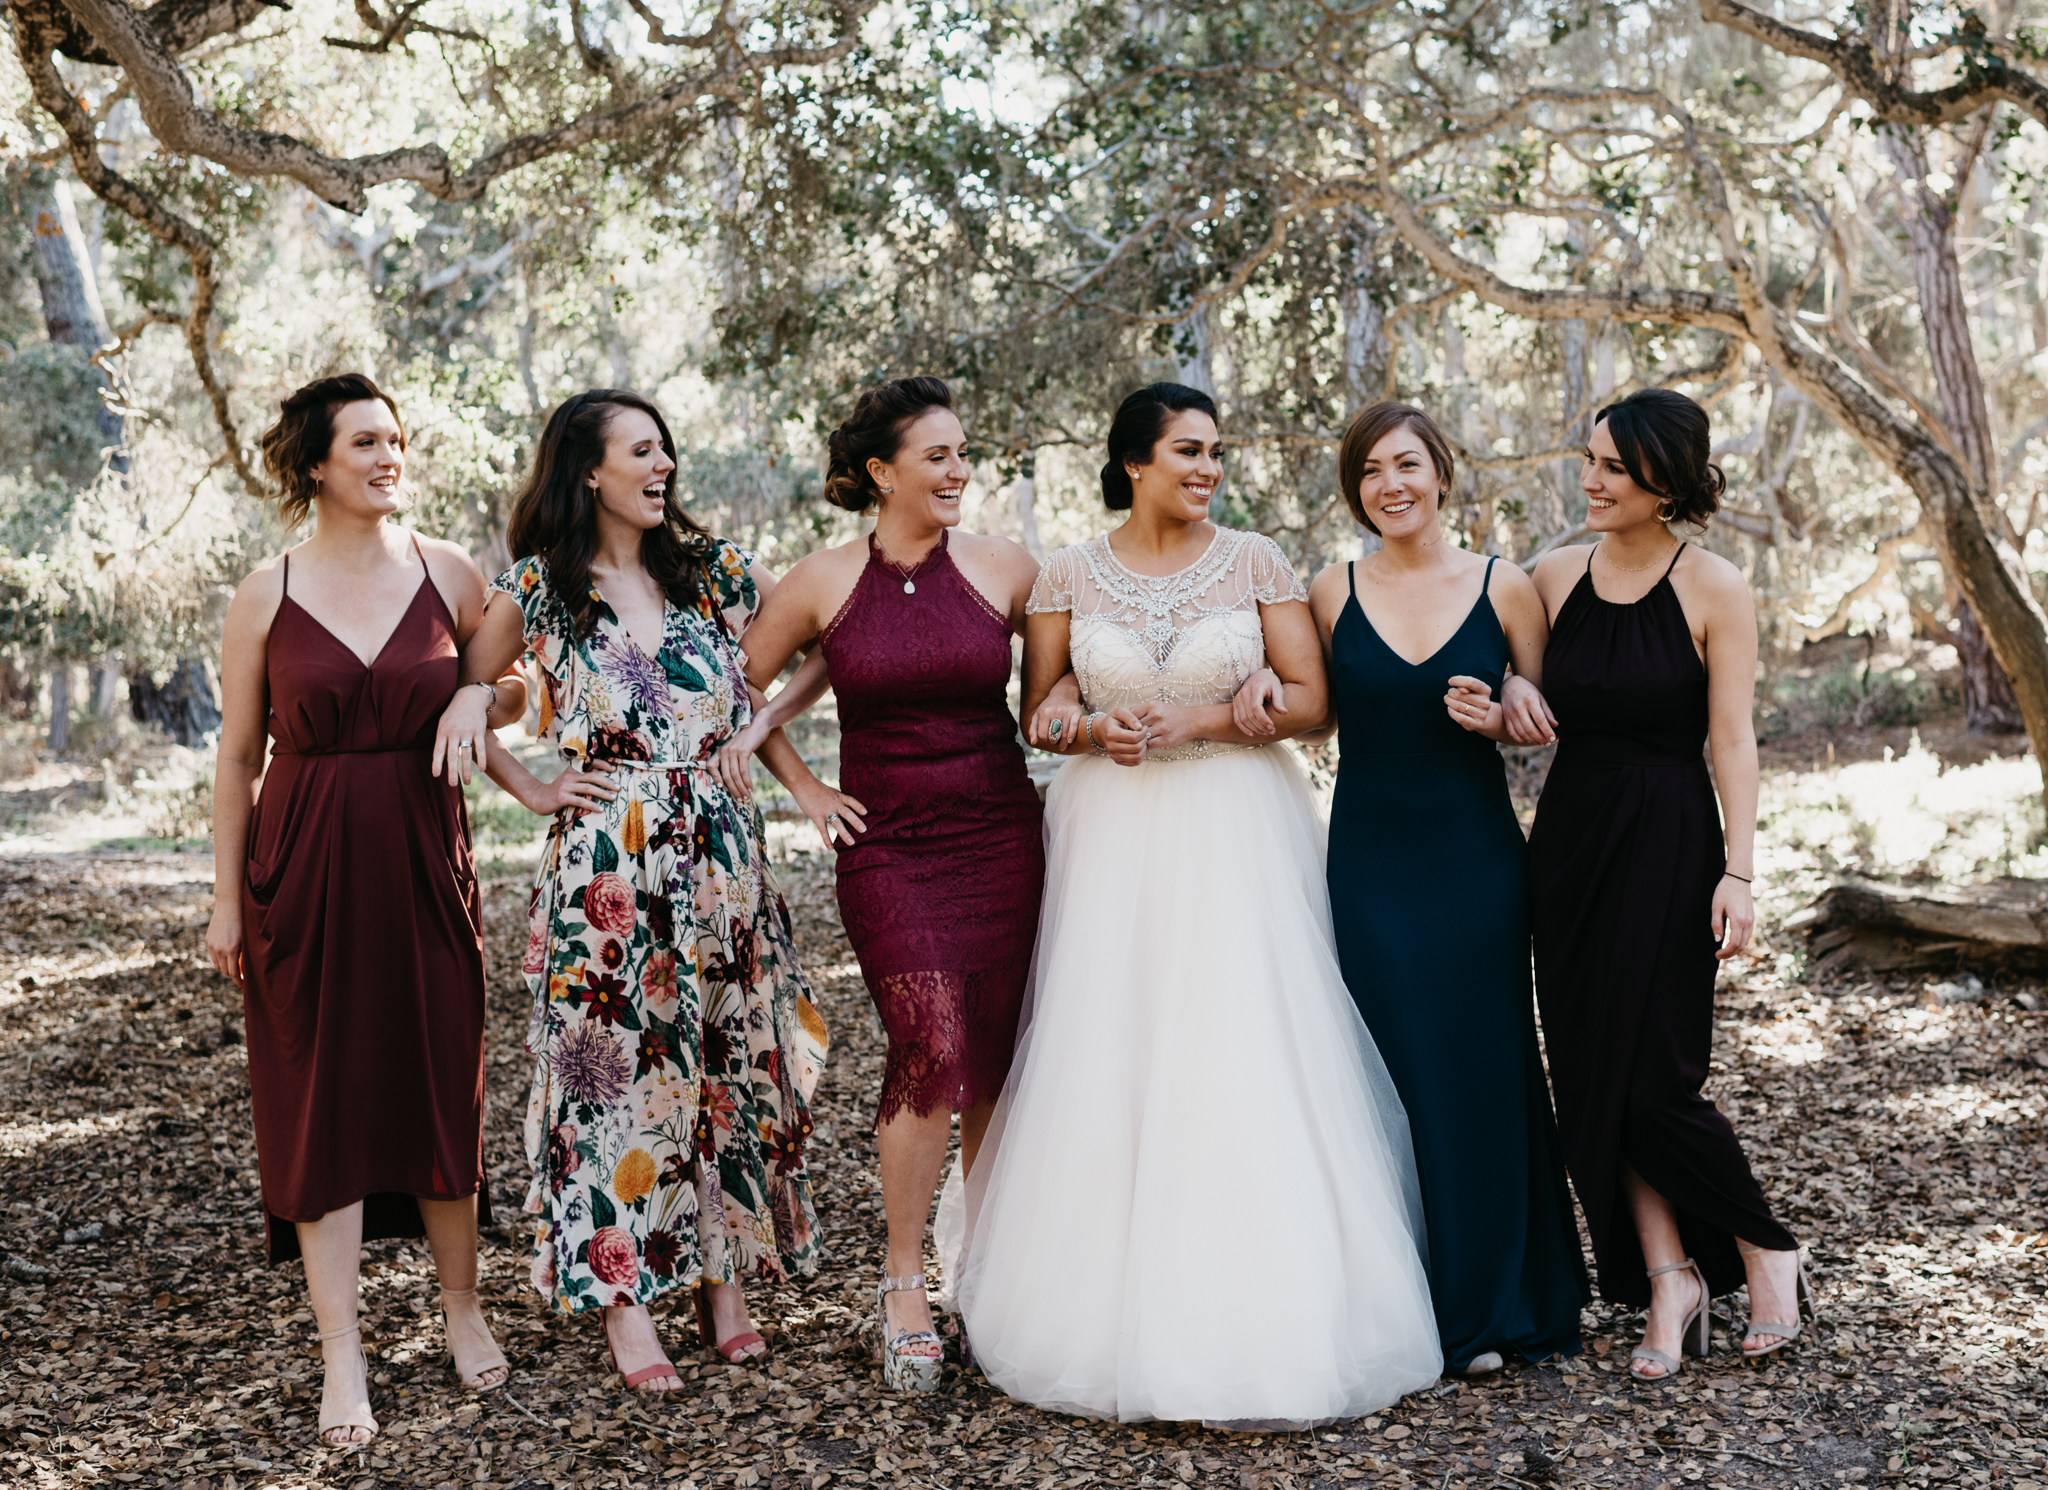 Monterey photographer Big sur California Coast adventerous wedding elopment intimate wedding photographer